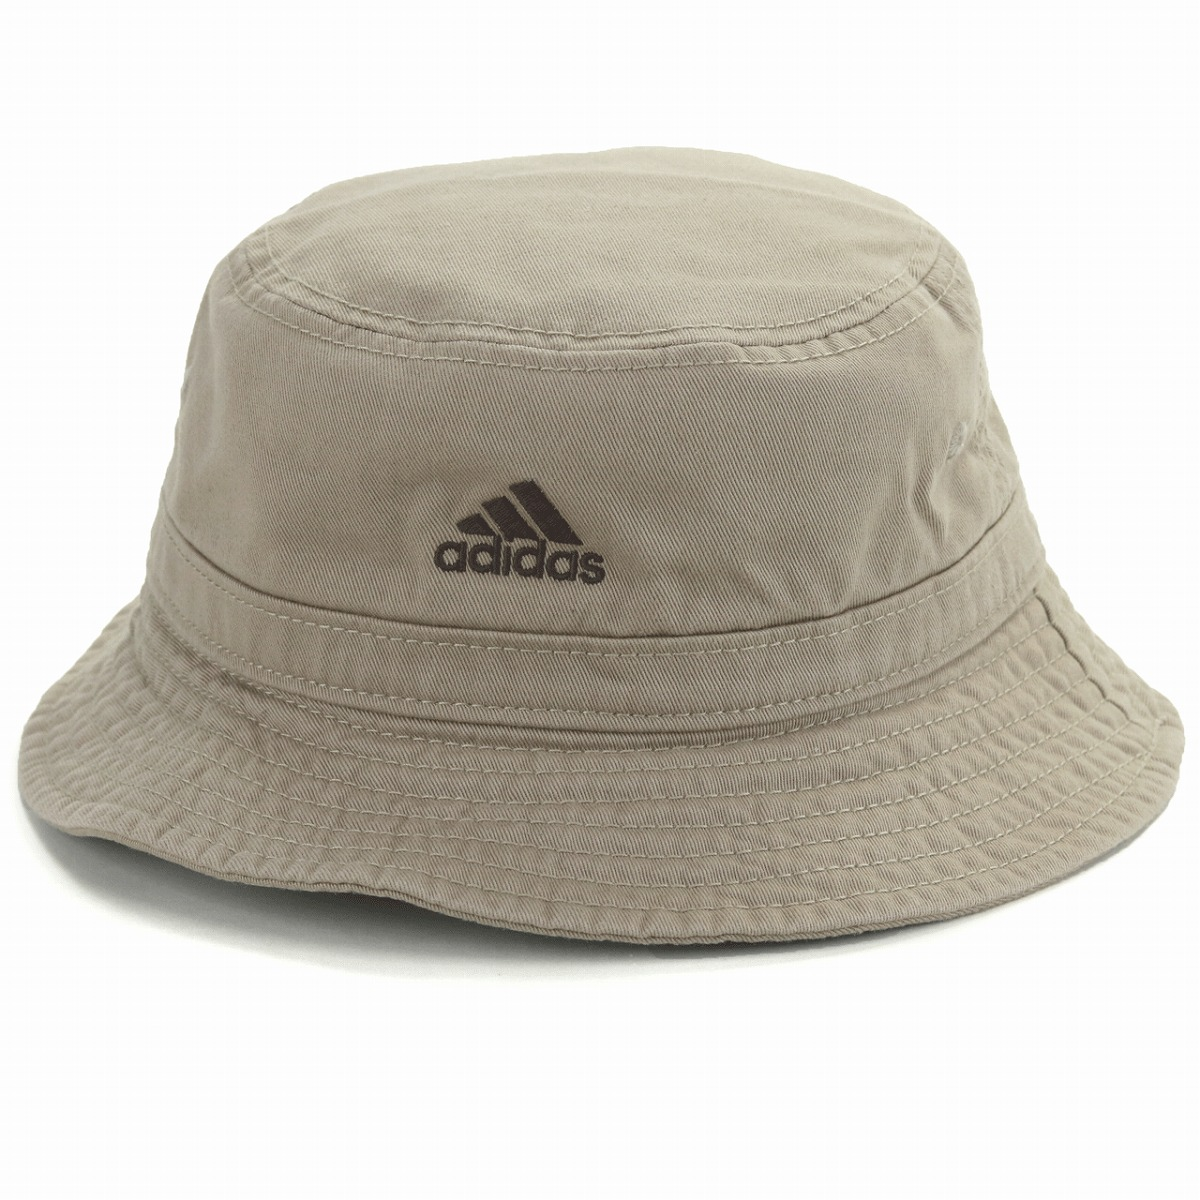 5a8290cf adidas safari hat men thunk pull Adidas hat Sakha re-hat sports awning  outdoor sports ...